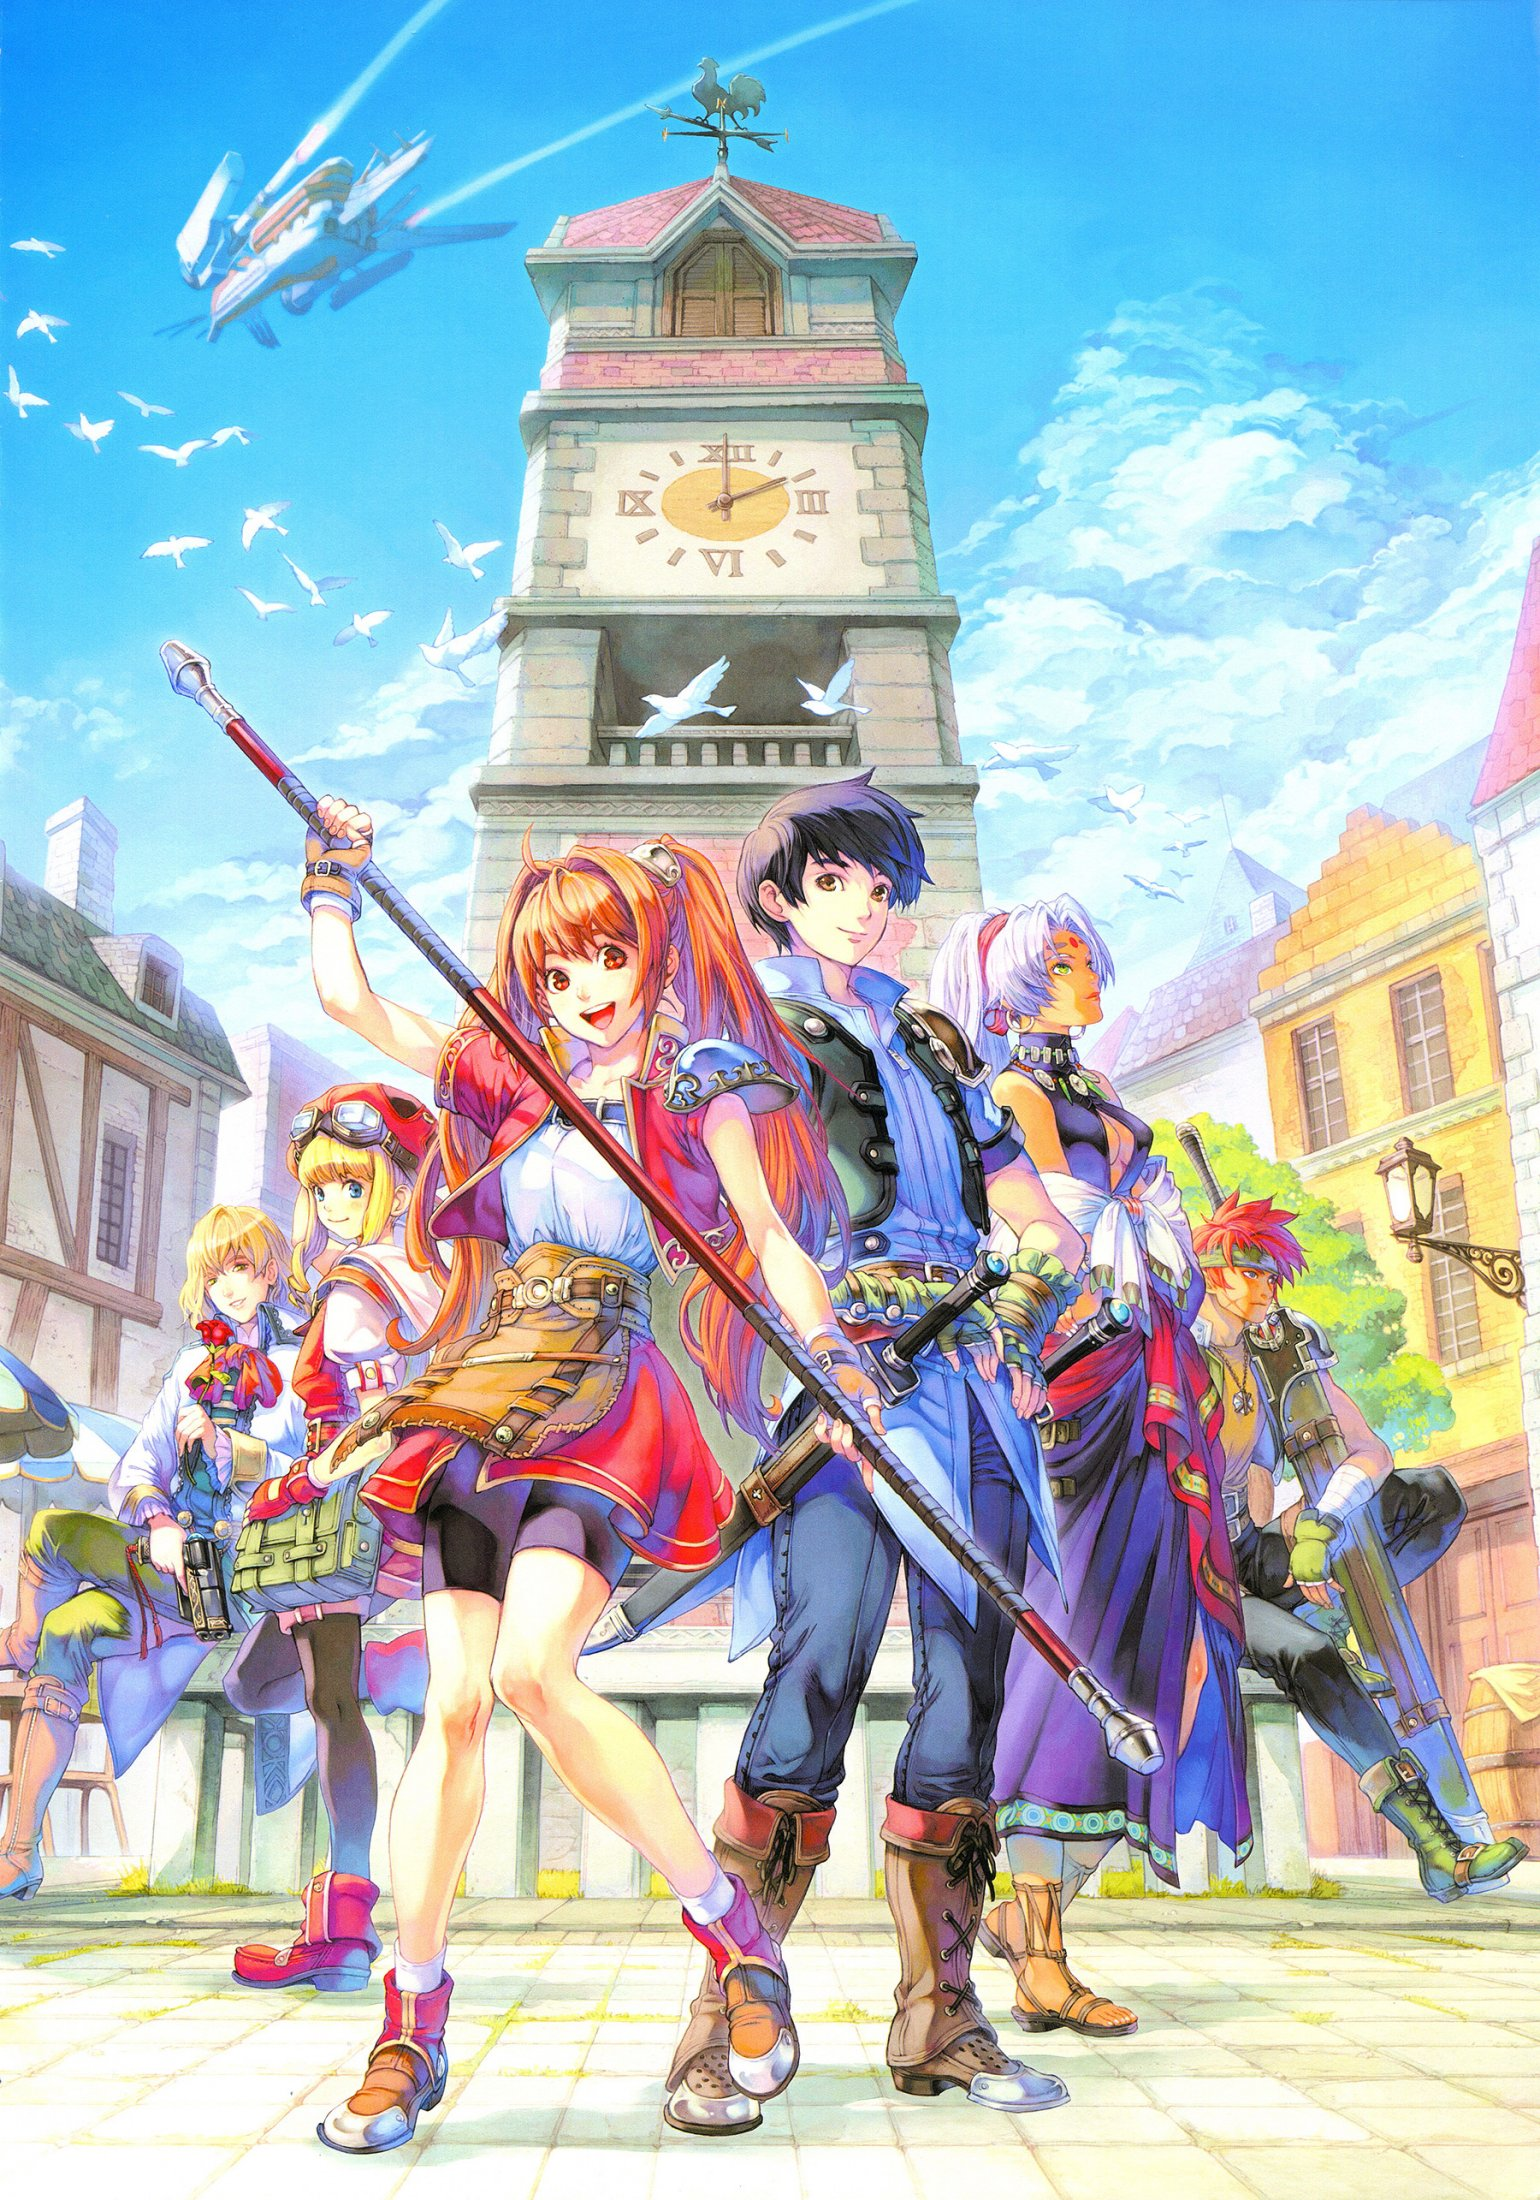 русификатор the legend of heroes - trails in the sky second chapter 大掃除を12月にやらない、そのメリット